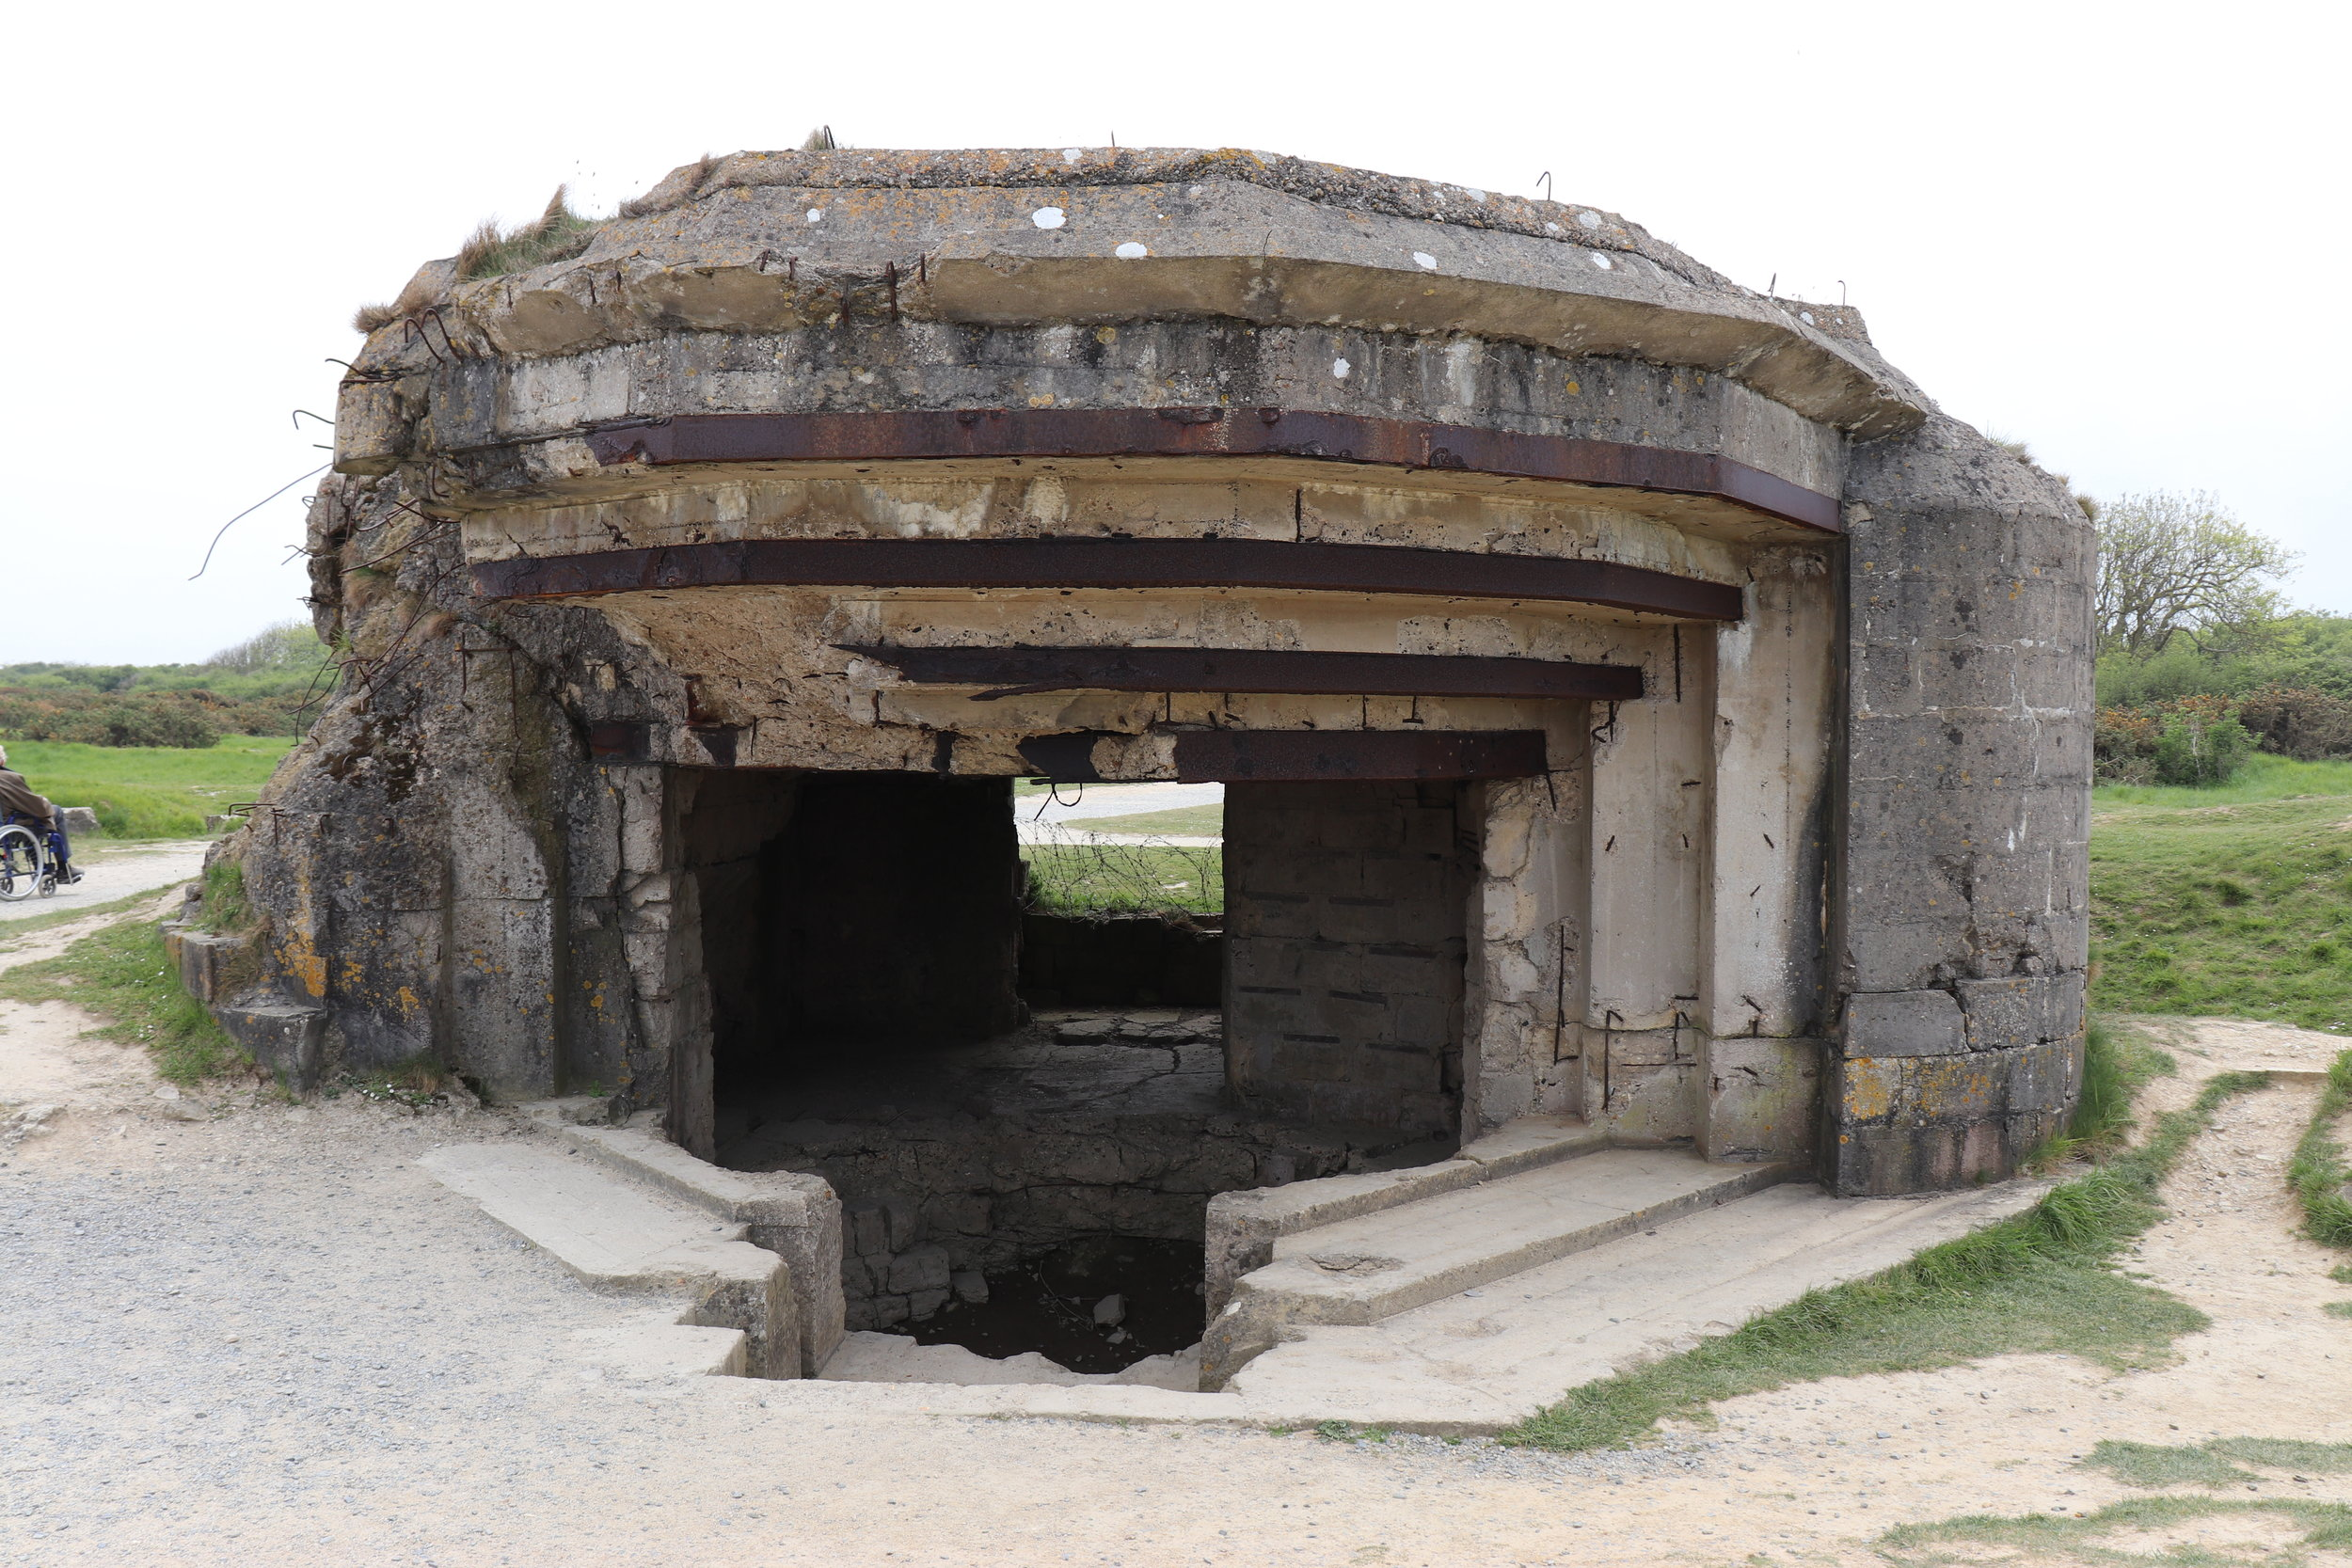 One of the many bunkers still standing.